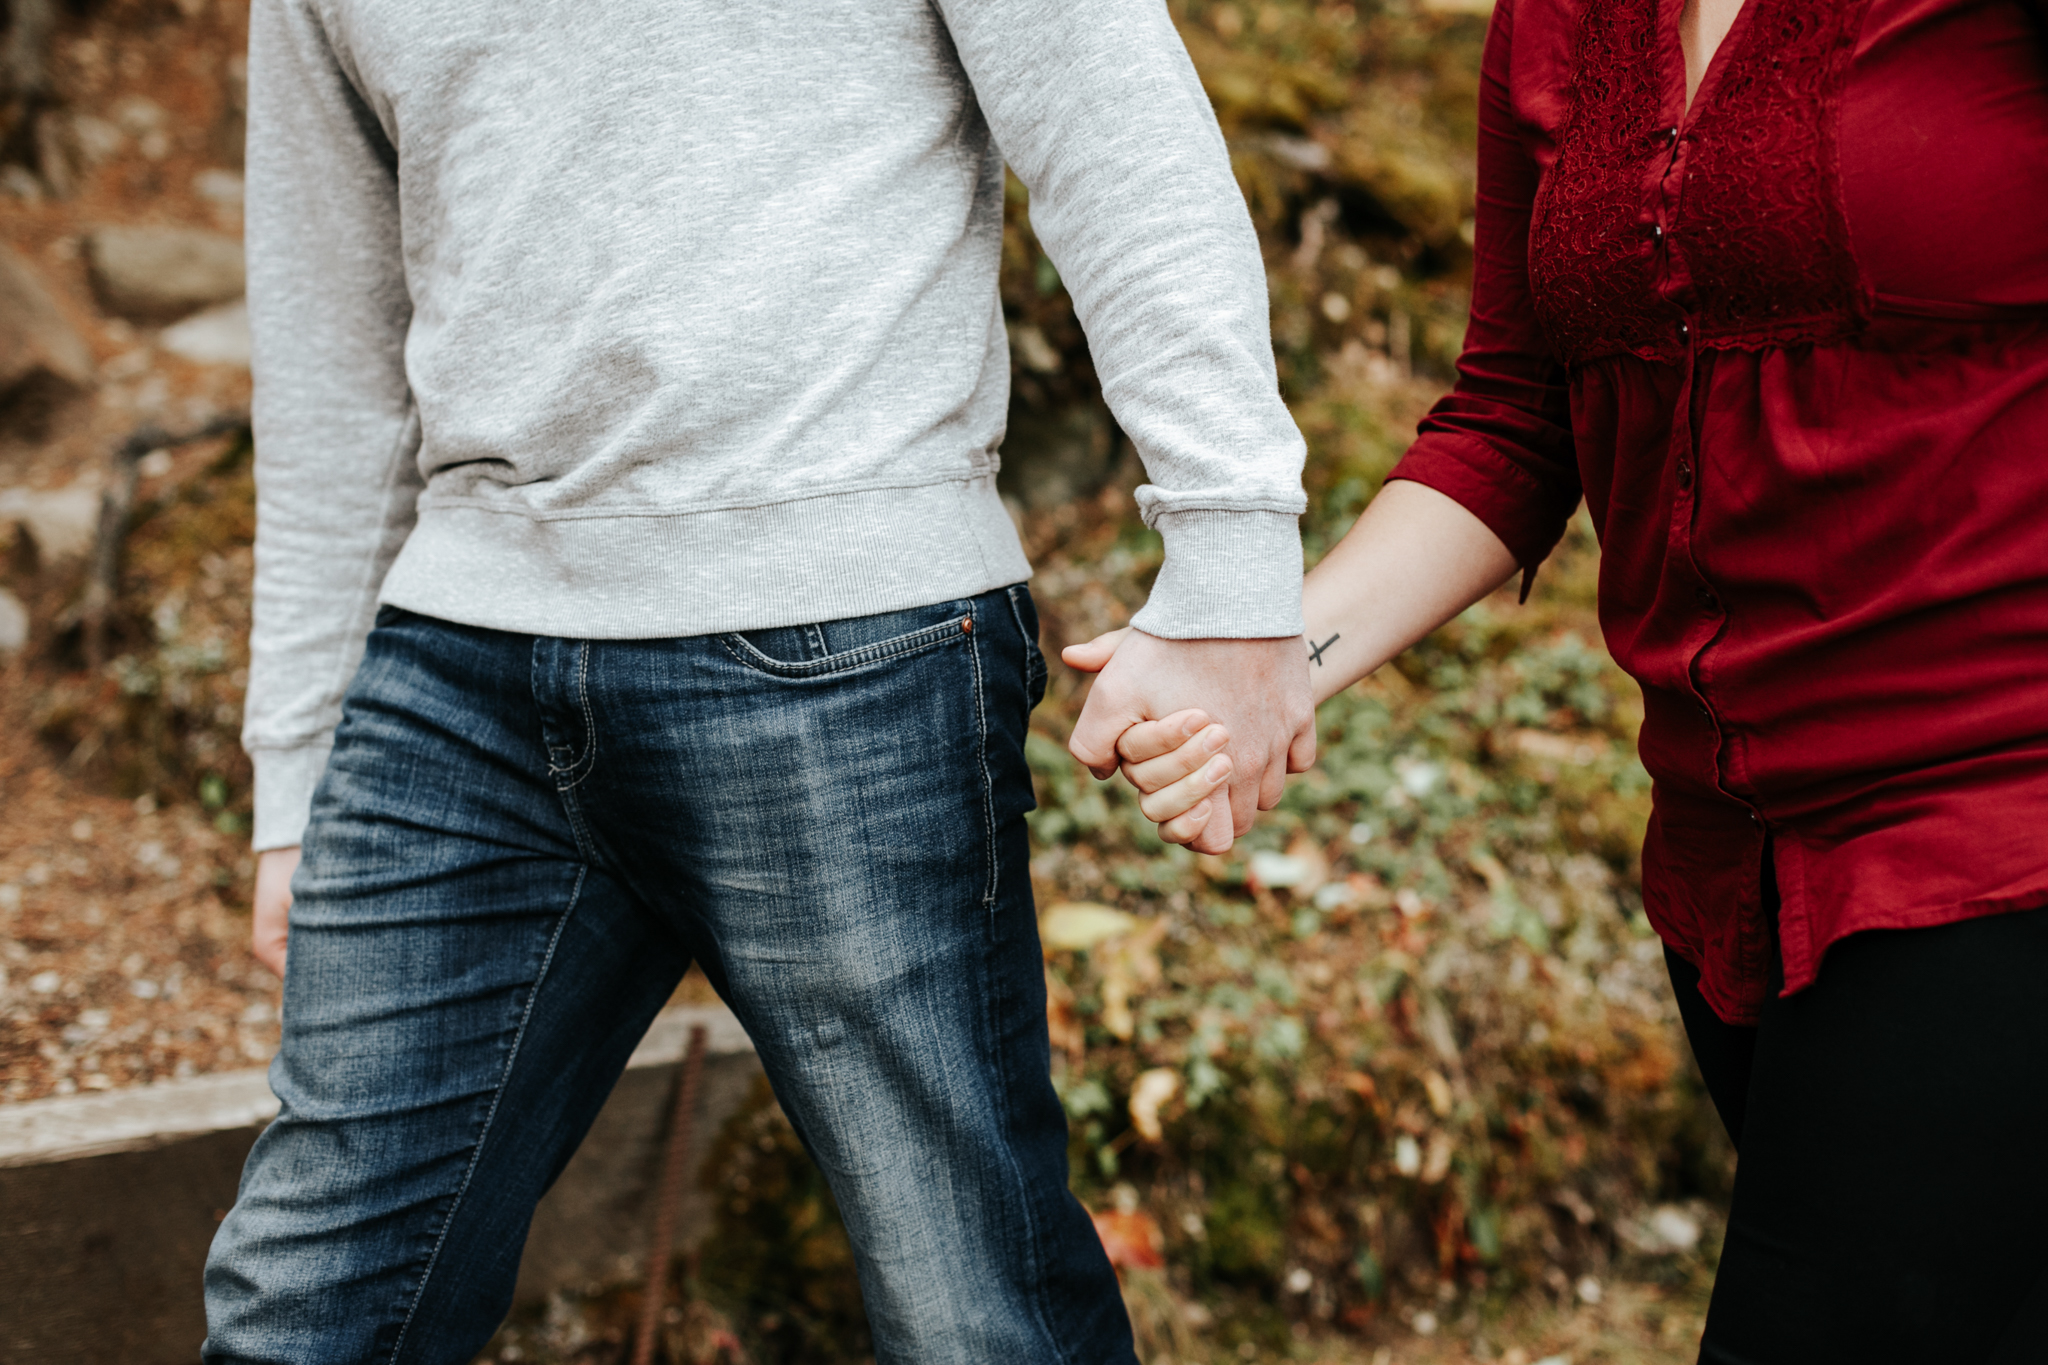 lethbridge-photographer-love-and-be-loved-photography-crowsnest-pass-engagement-andi-philip-picture-image-photo--49.jpg